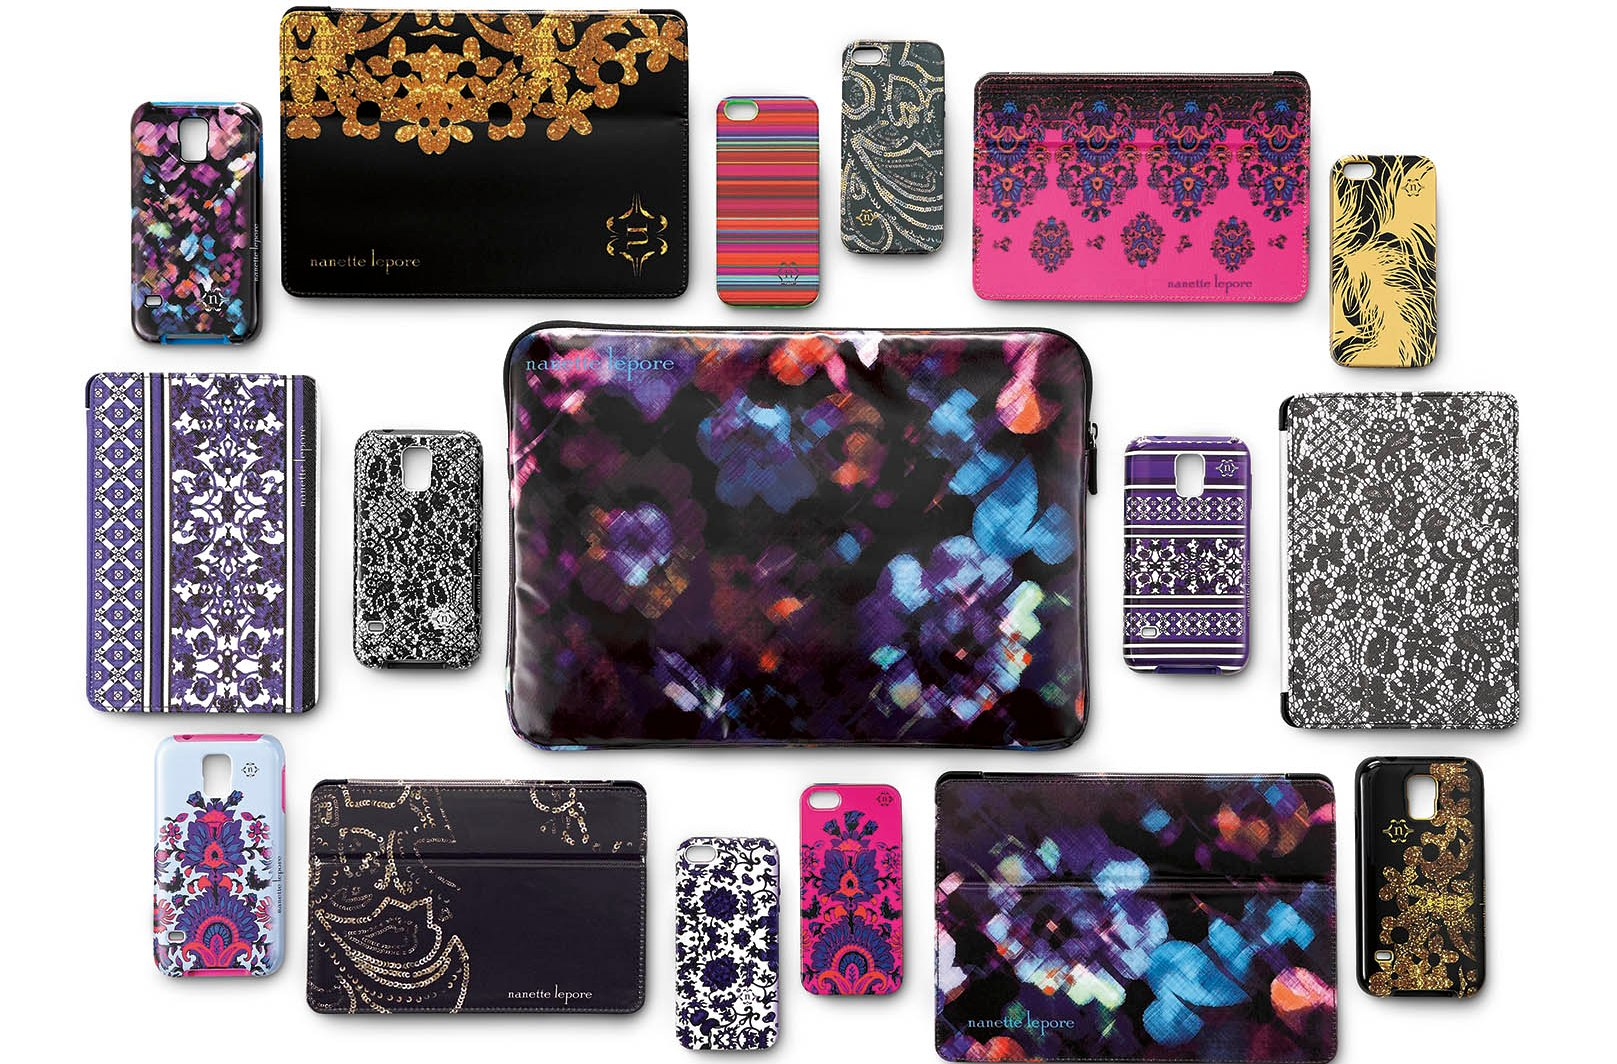 Pieces from Nanette Lepore's new line of Best Buy tech accessories